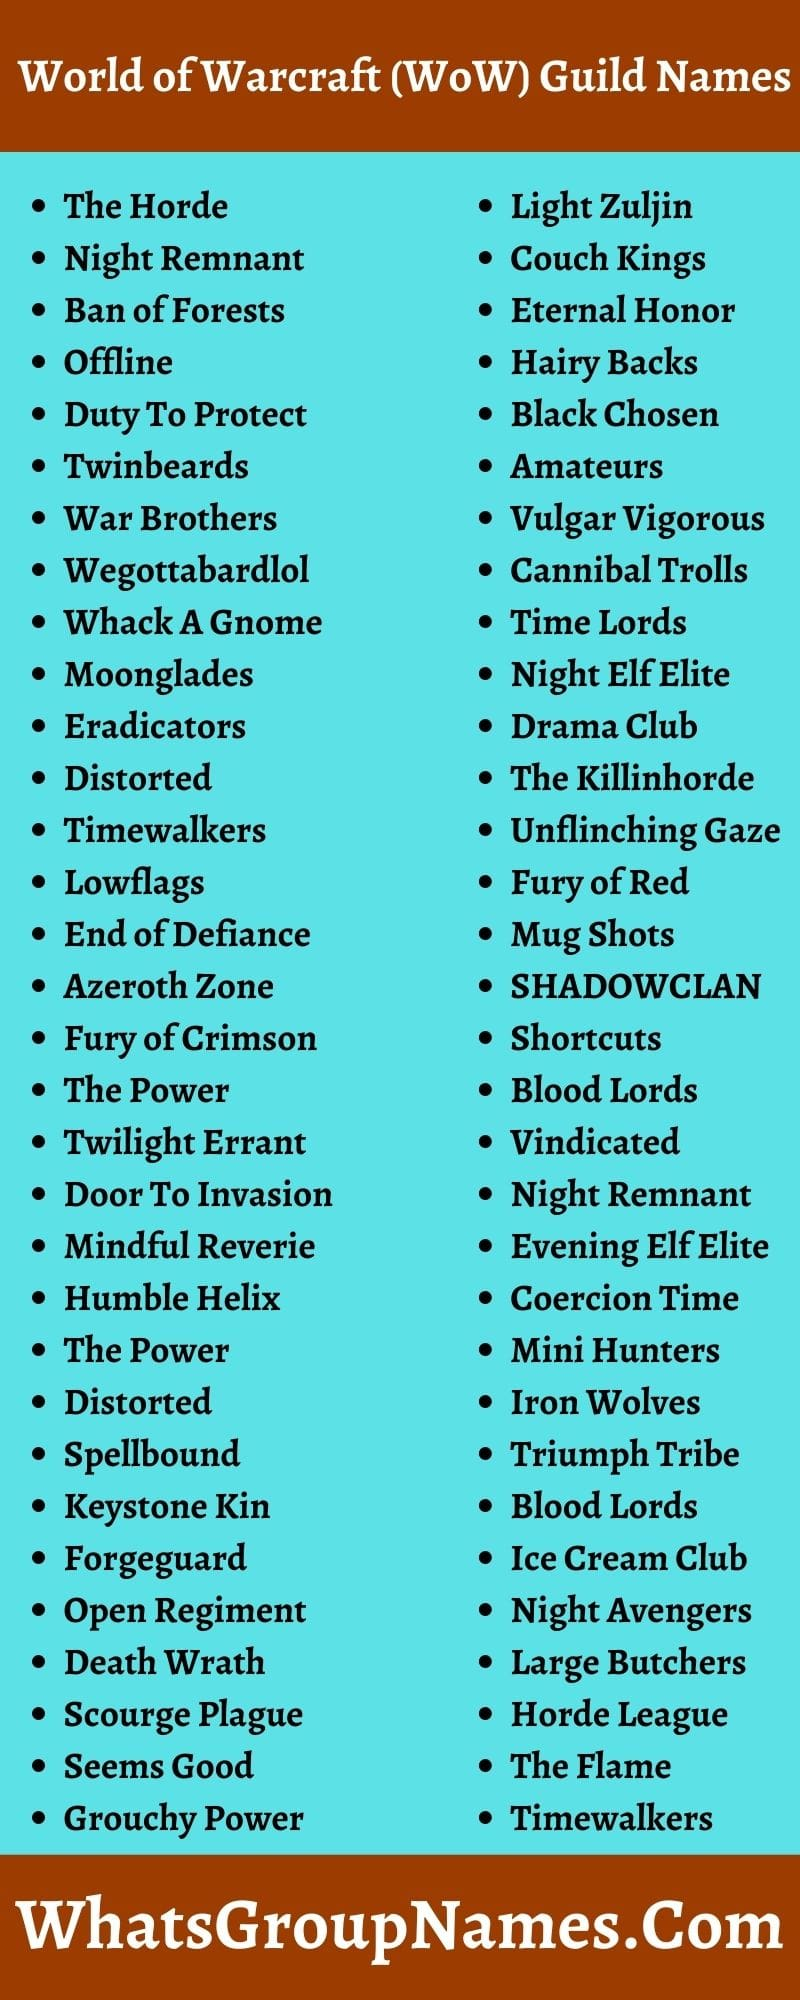 World of Warcraft (WoW) Guild Names